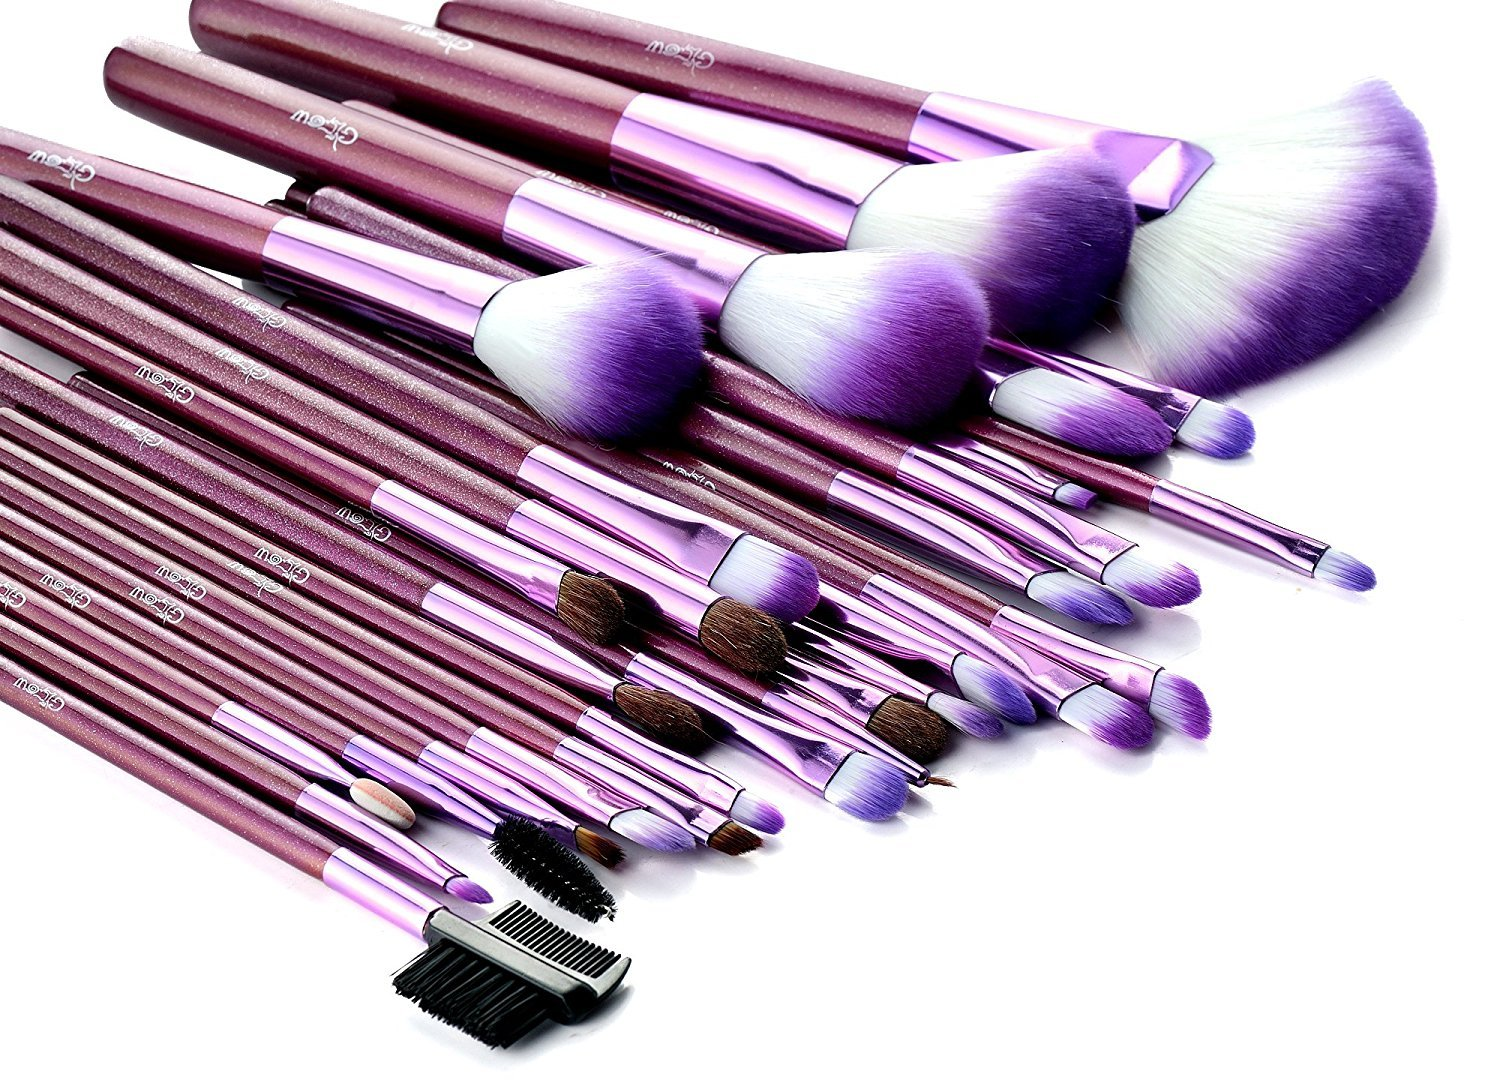 b4bef5ce3df8 Glow 30 Pc Professional Wooden Handle Makeup Brushes Set in Purple ...